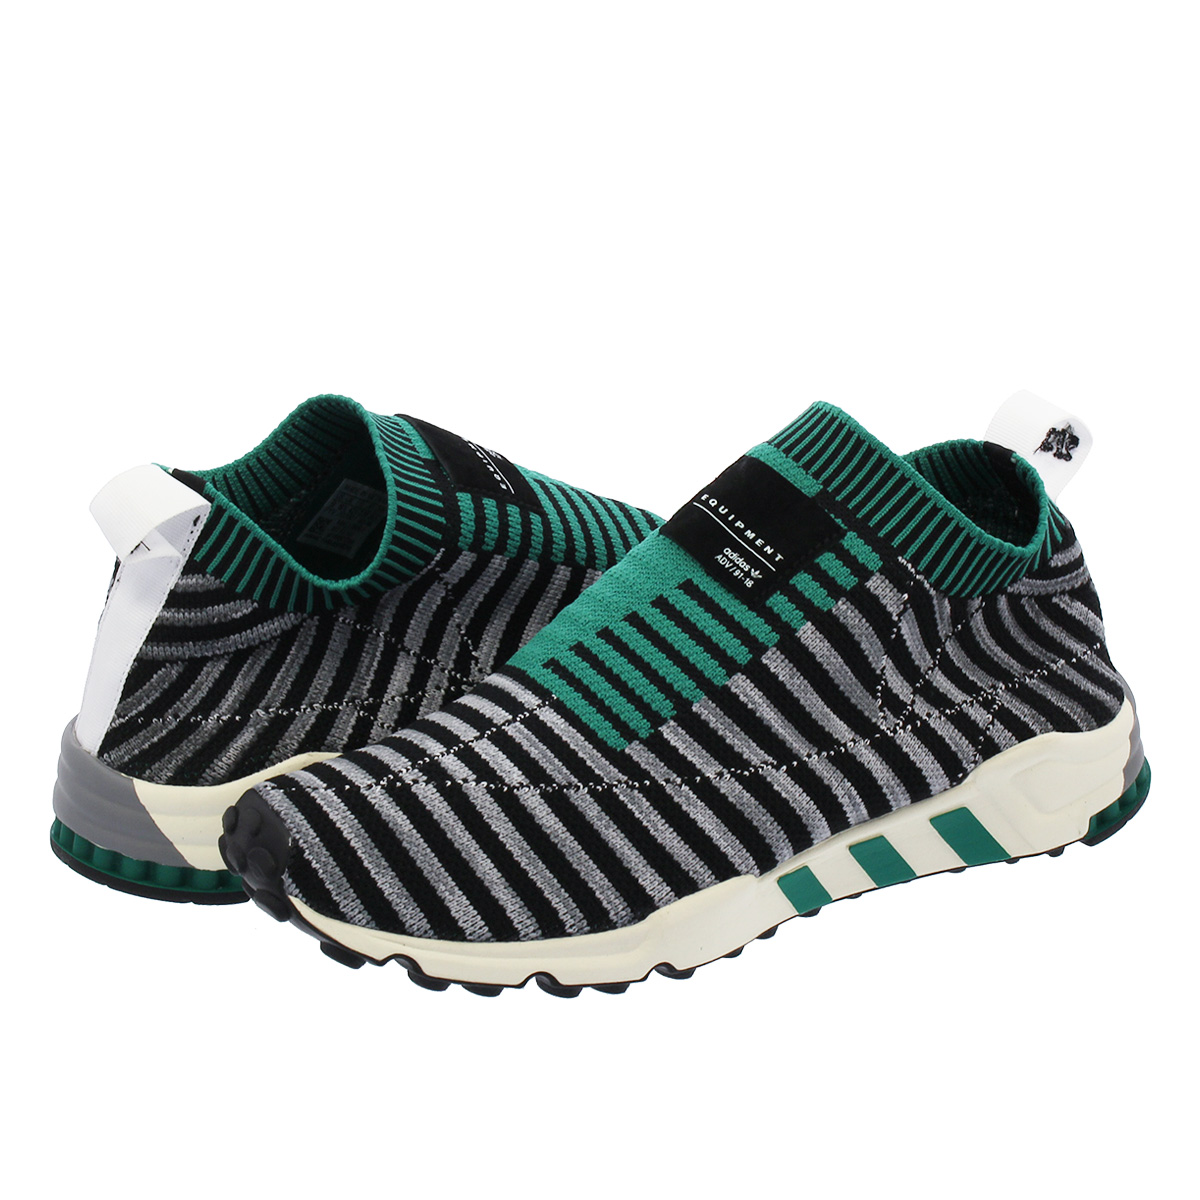 wholesale dealer 9c8cd b6c5a adidas EQT SUPPORT PK 2/3 Adidas EQT support prime knit 2/3 CORE BLACK/GREY  ONE/SUB GREEN b37522